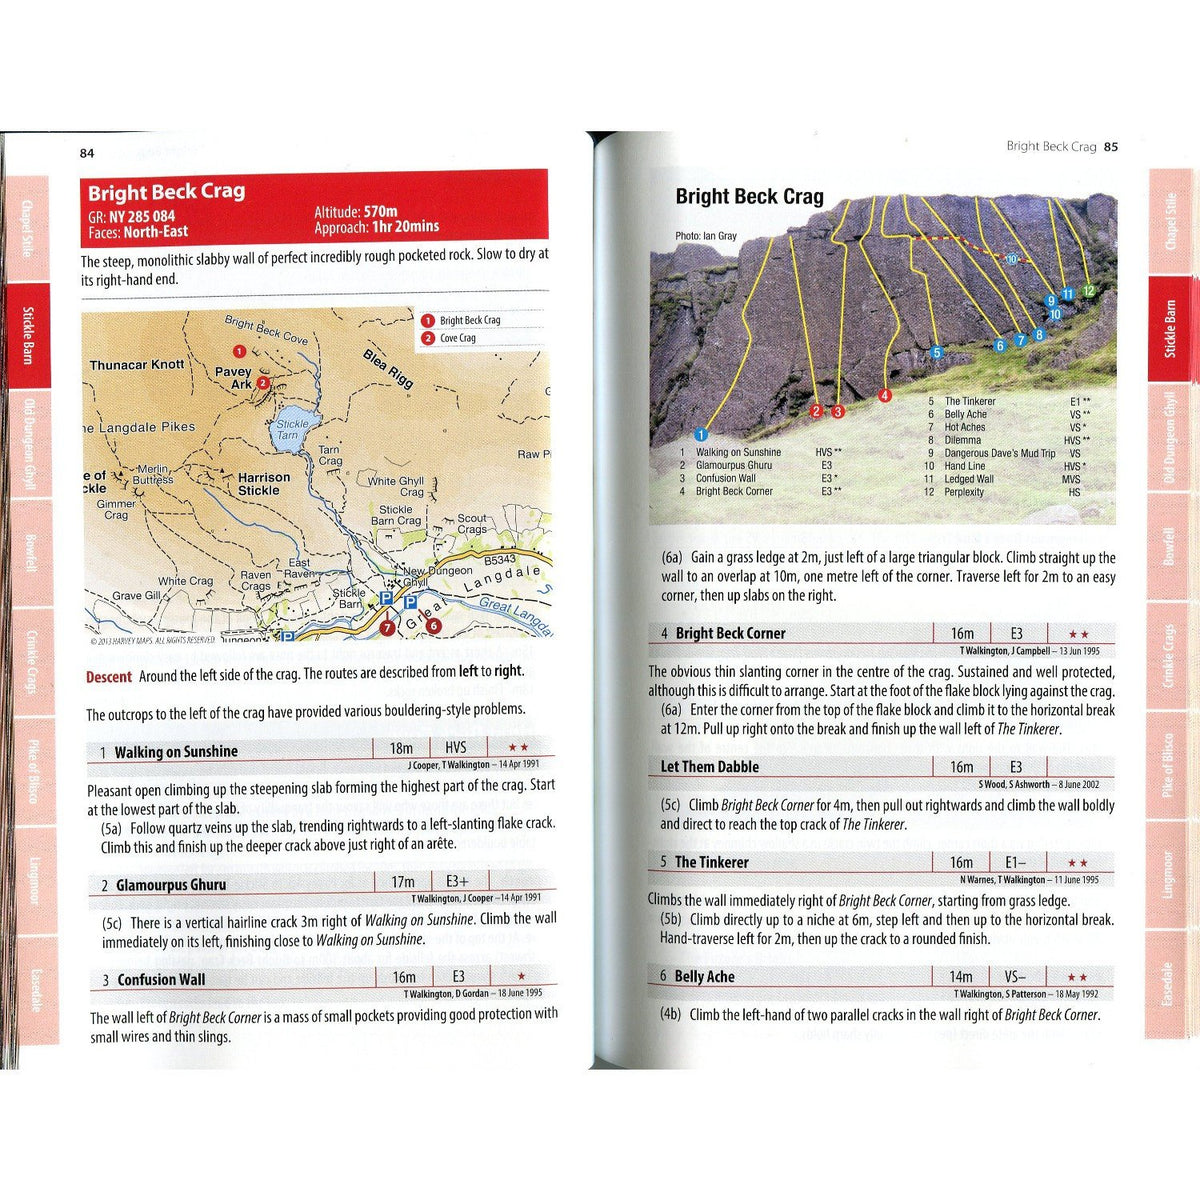 Langdale (FRCC) guide, example inside pages showing topos and route descriptions